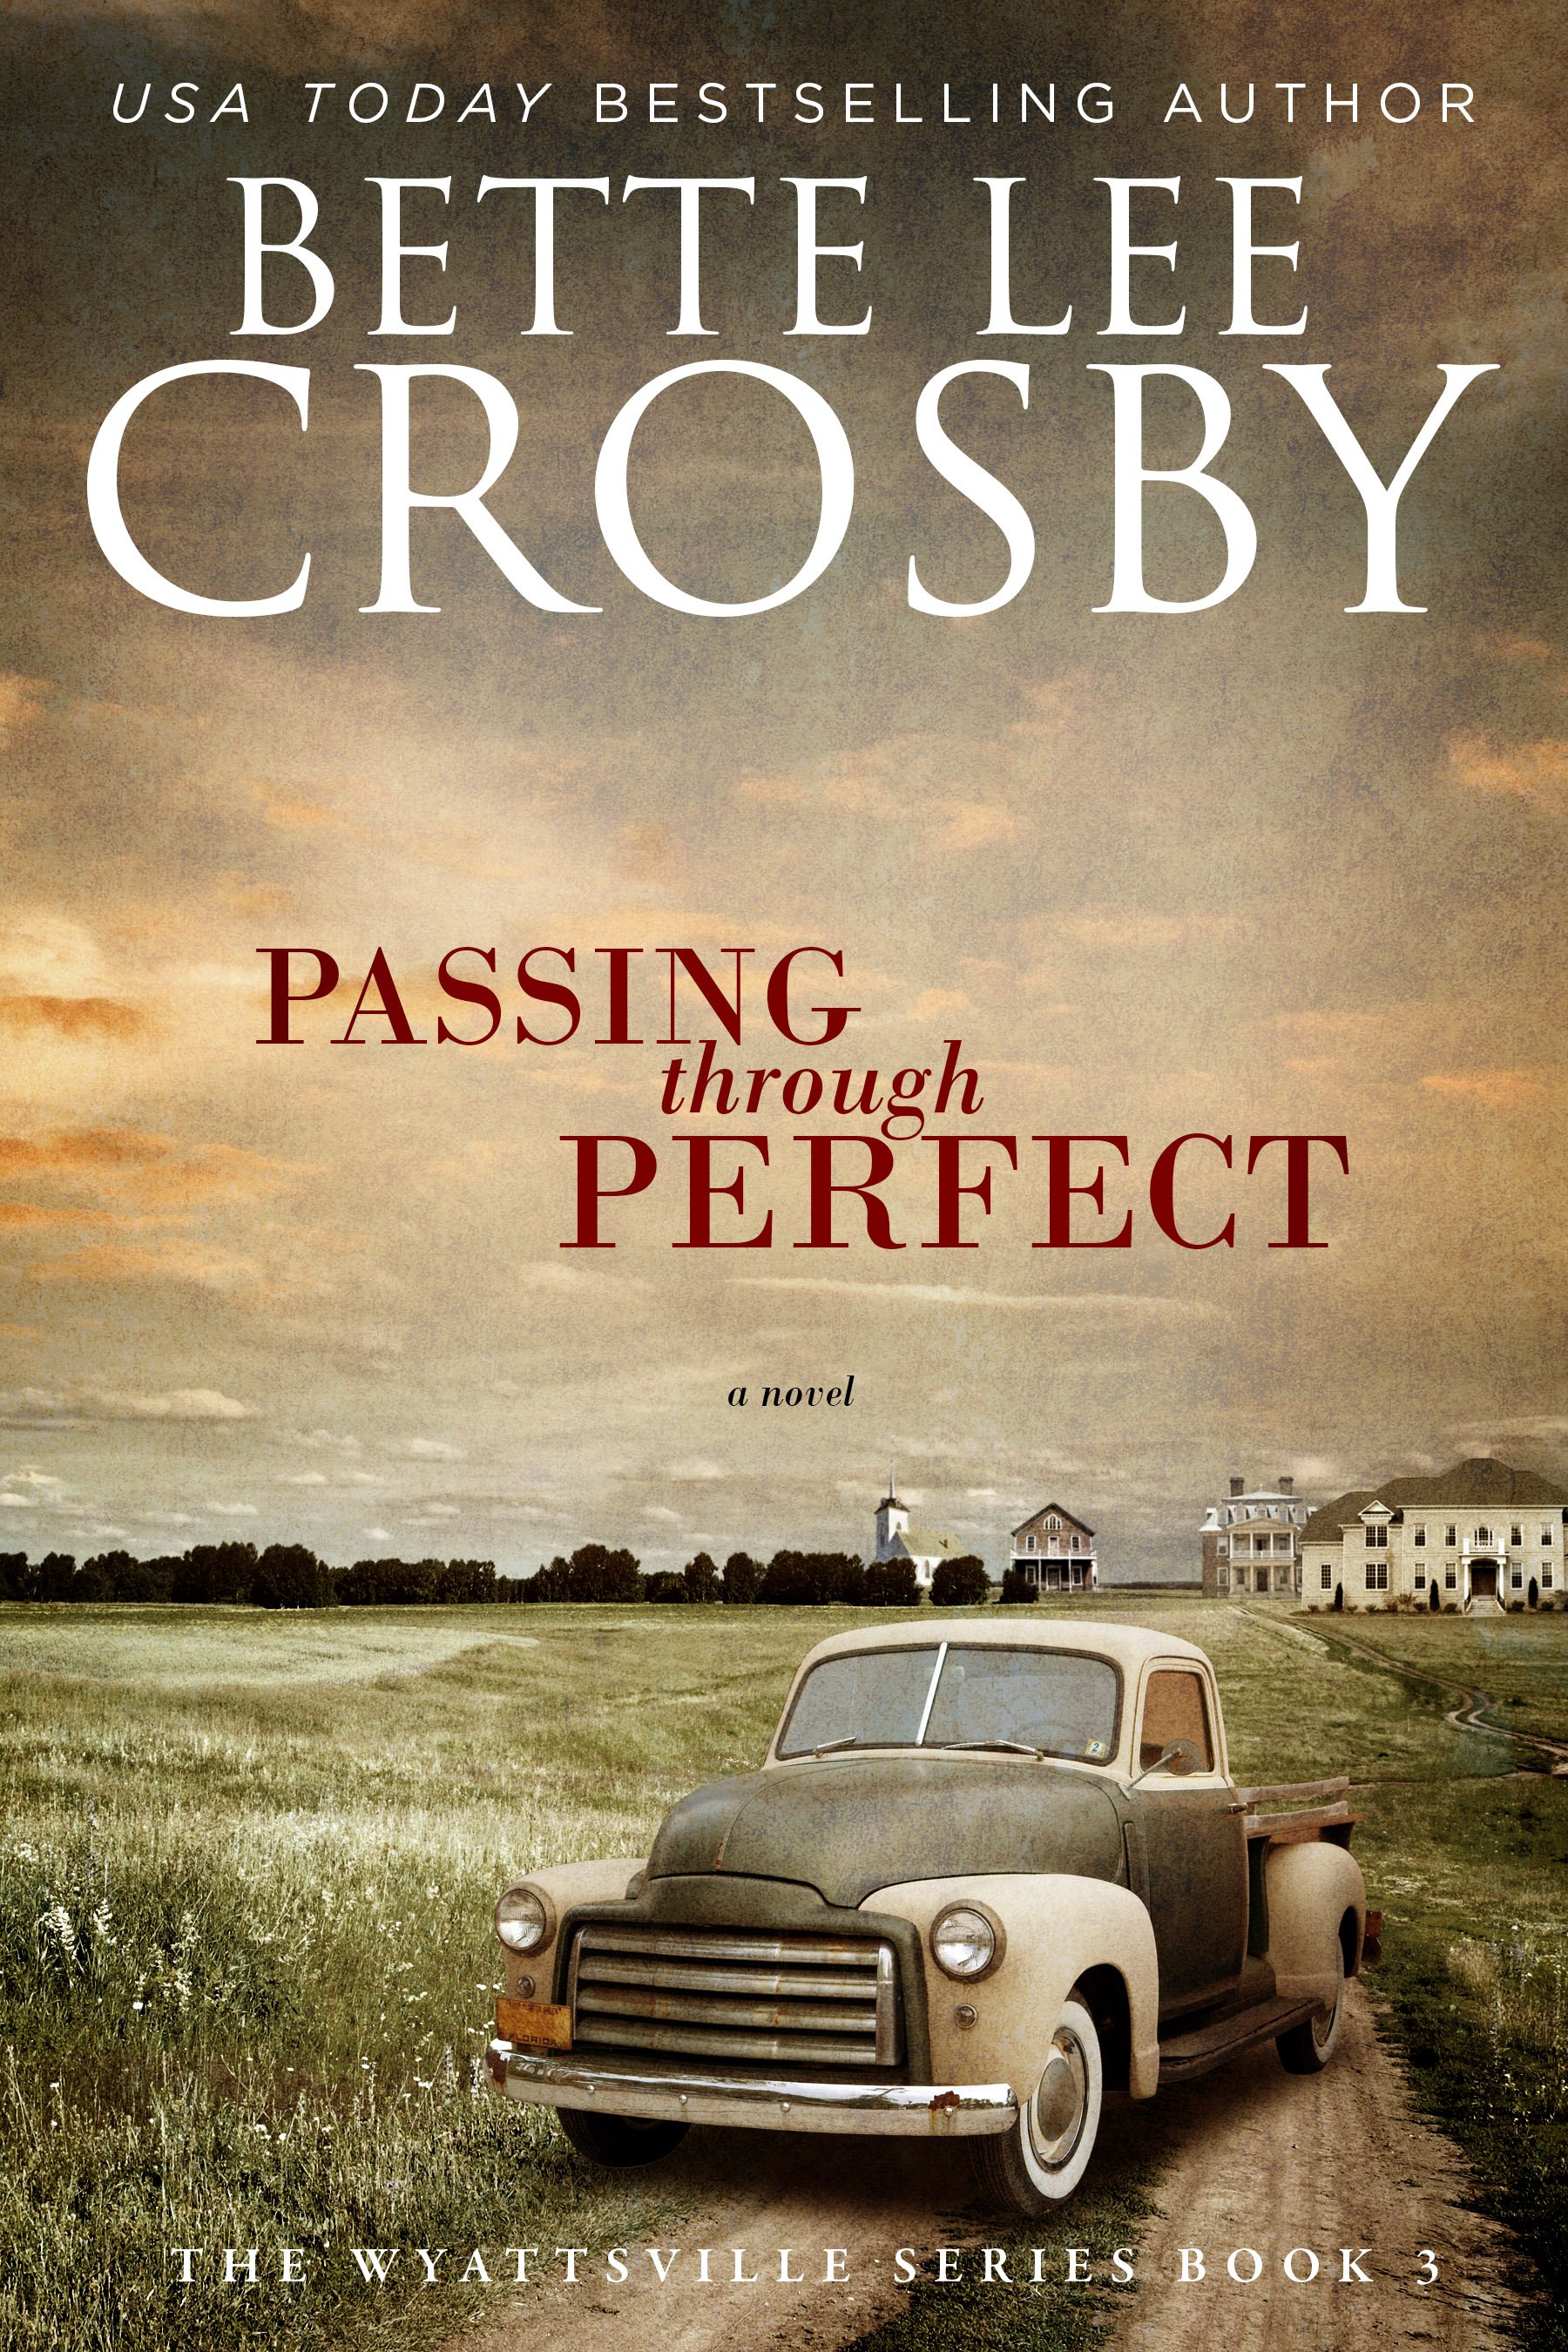 Book Discussion Questions – Passing through Perfect